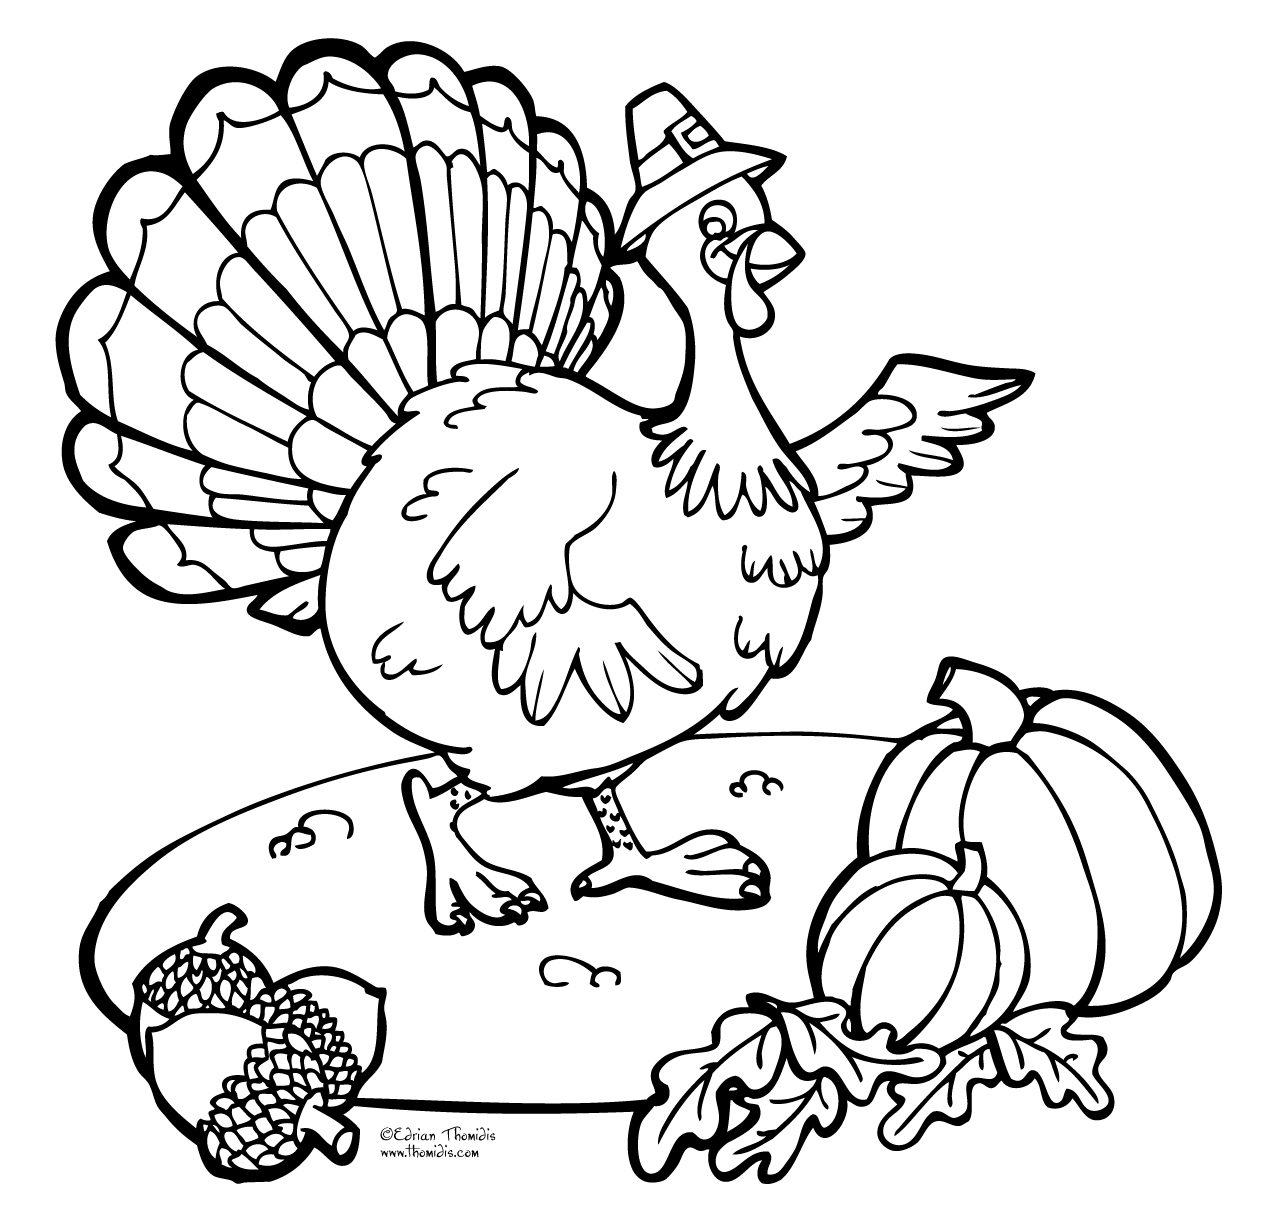 Thanksgiving Turkey Coloring Pages Printable Thanksgivingturkeycoloringpage  Coloringpagebook